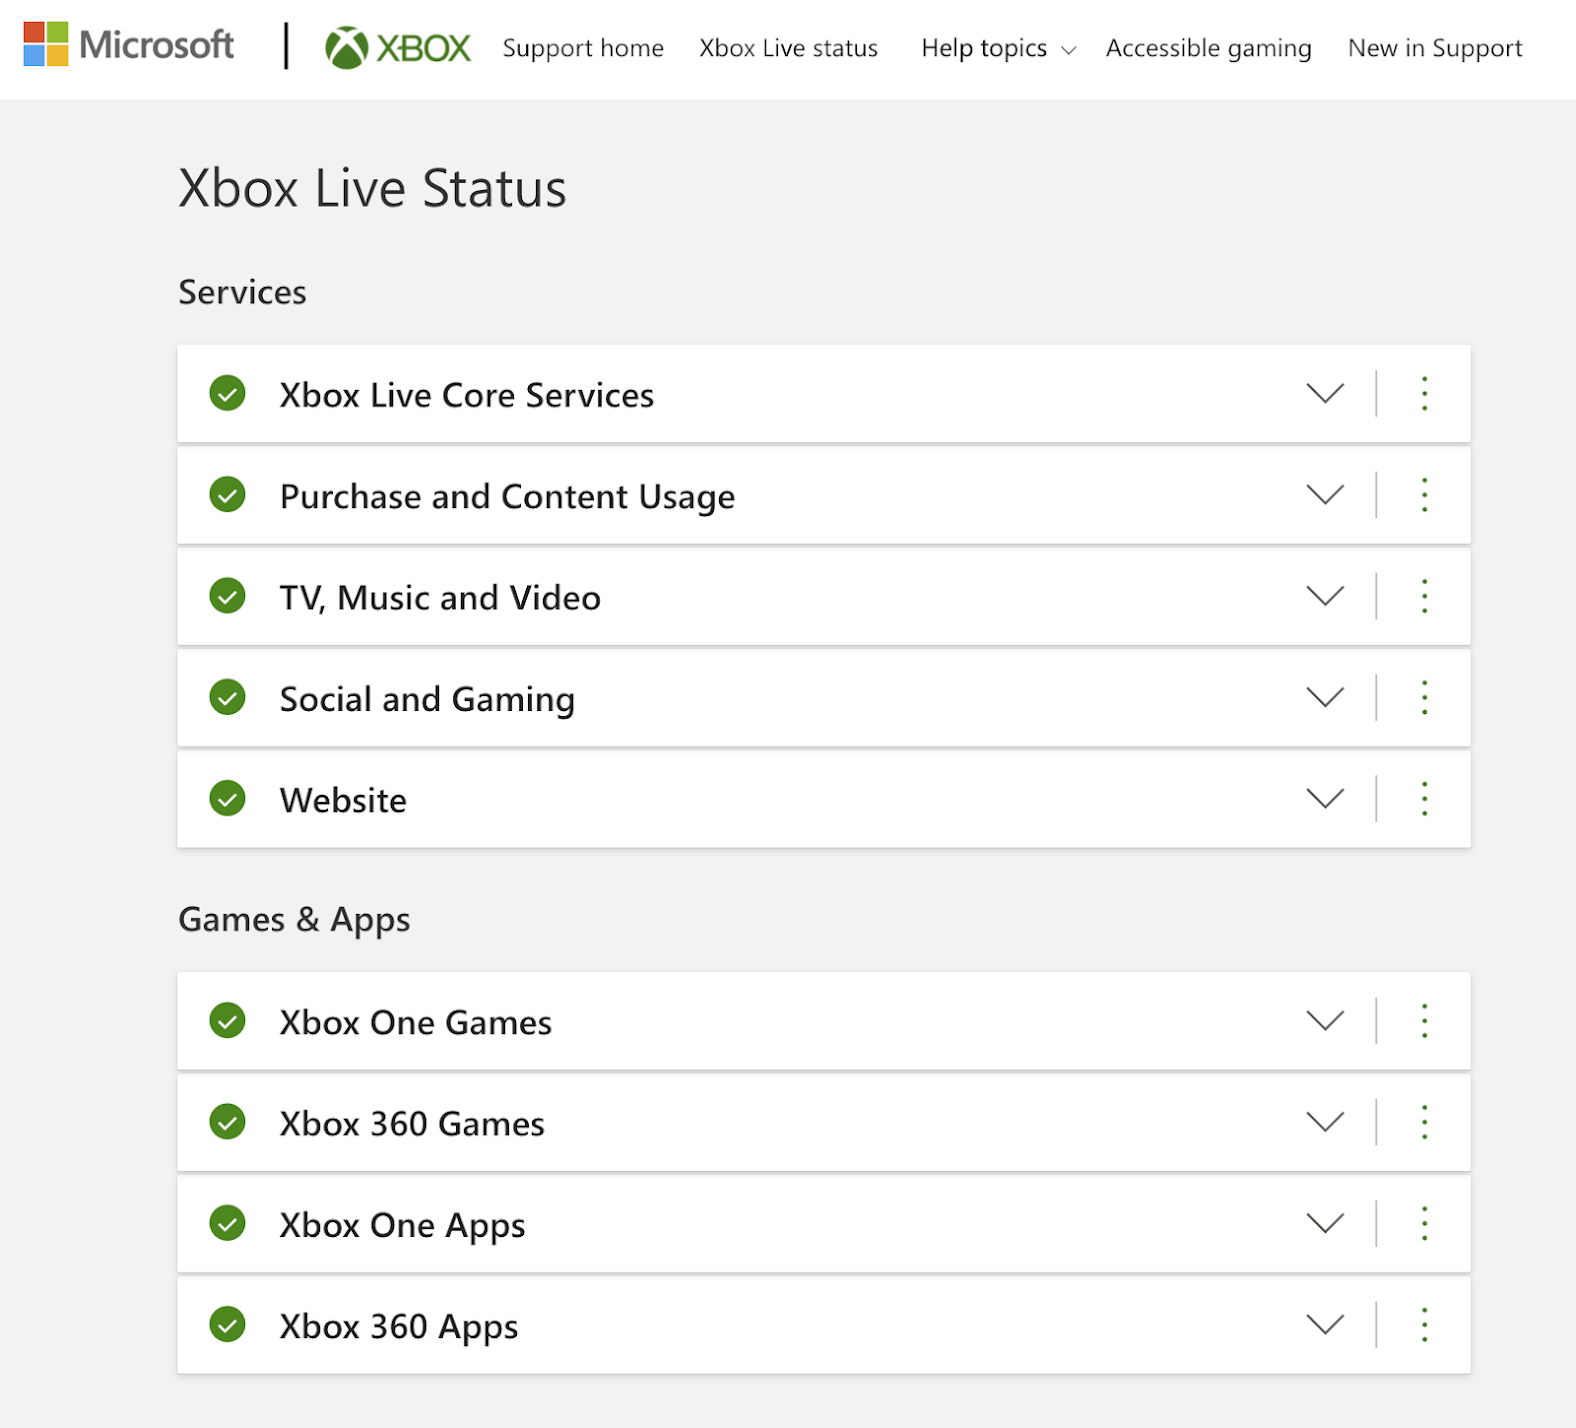 Xbox Live Status page